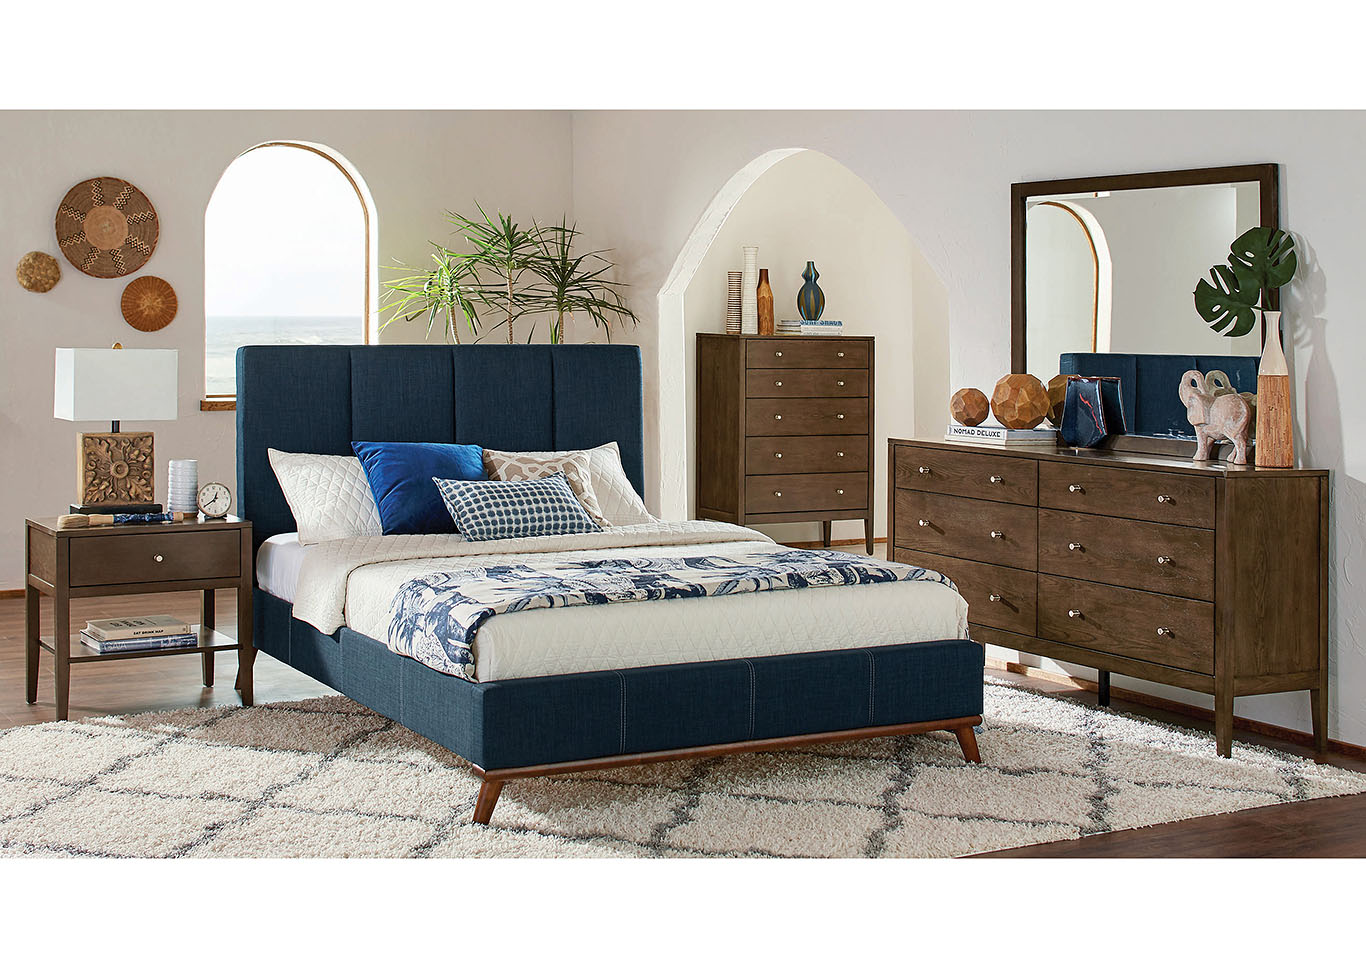 Charity Blue Ash Brown Upholstered Twin 5 Piece Bedroom Set R J